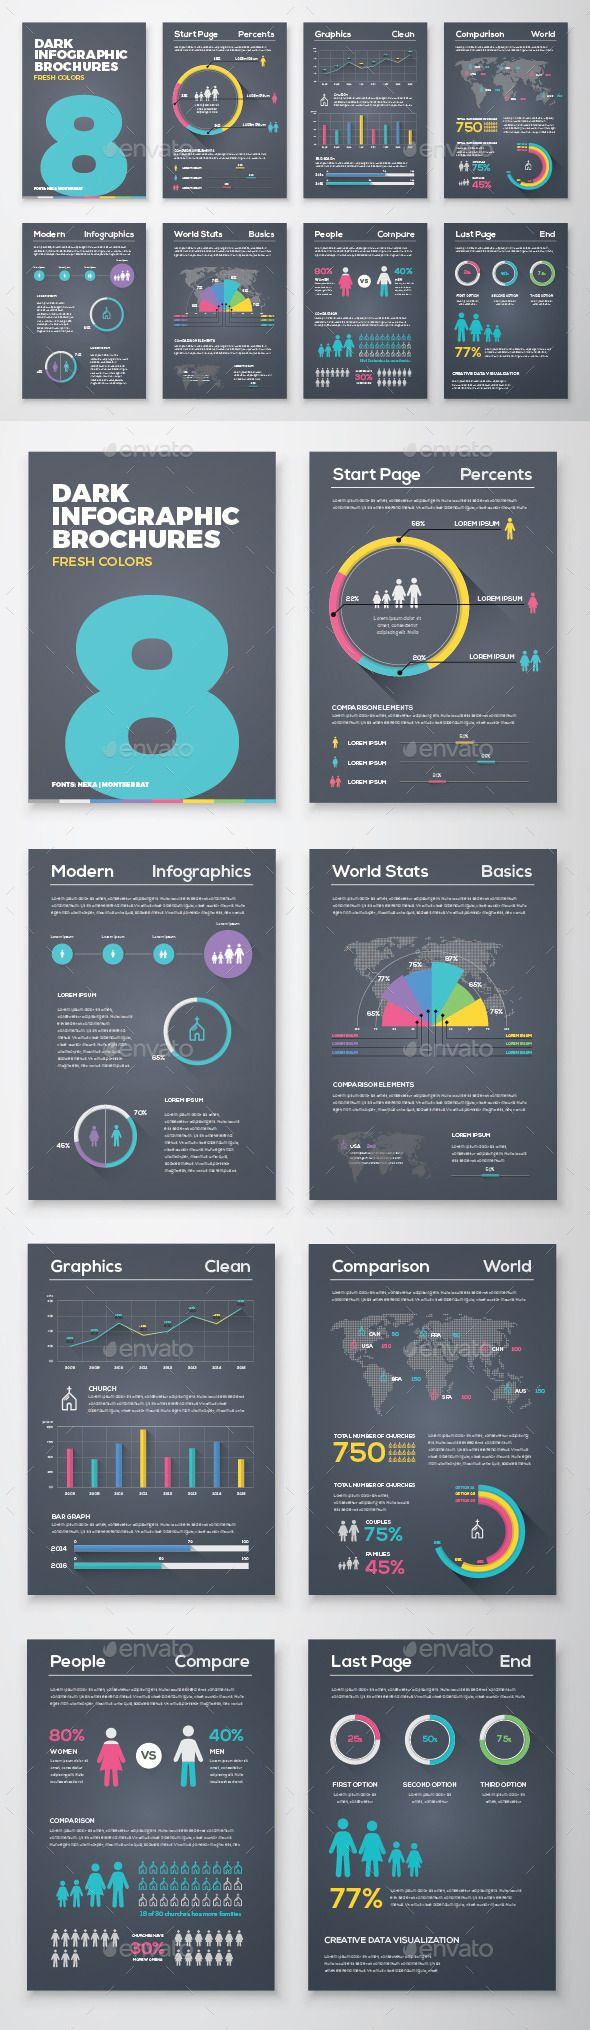 Dark Infographic Brochure Vector Elements Template #design Download: http://graphicriver.net/item/dark-infographic-brochure-vector-elements-kit-8/11687537?ref=ksioks